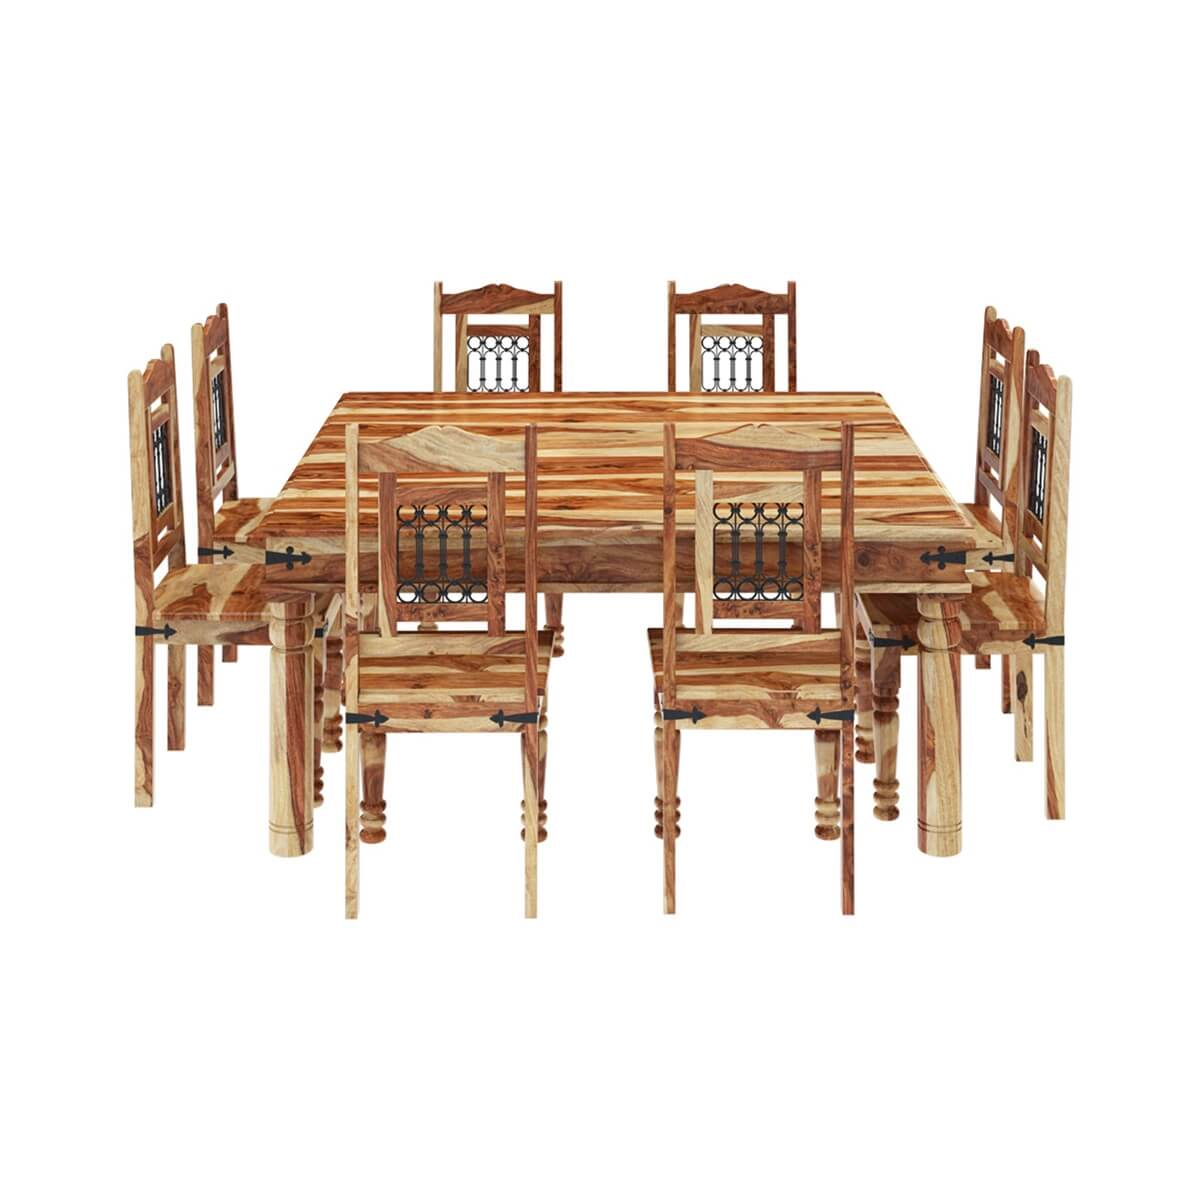 Peoria Solid Wood Large Square Dining Table U0026 Chair Set For 8 People Part 49